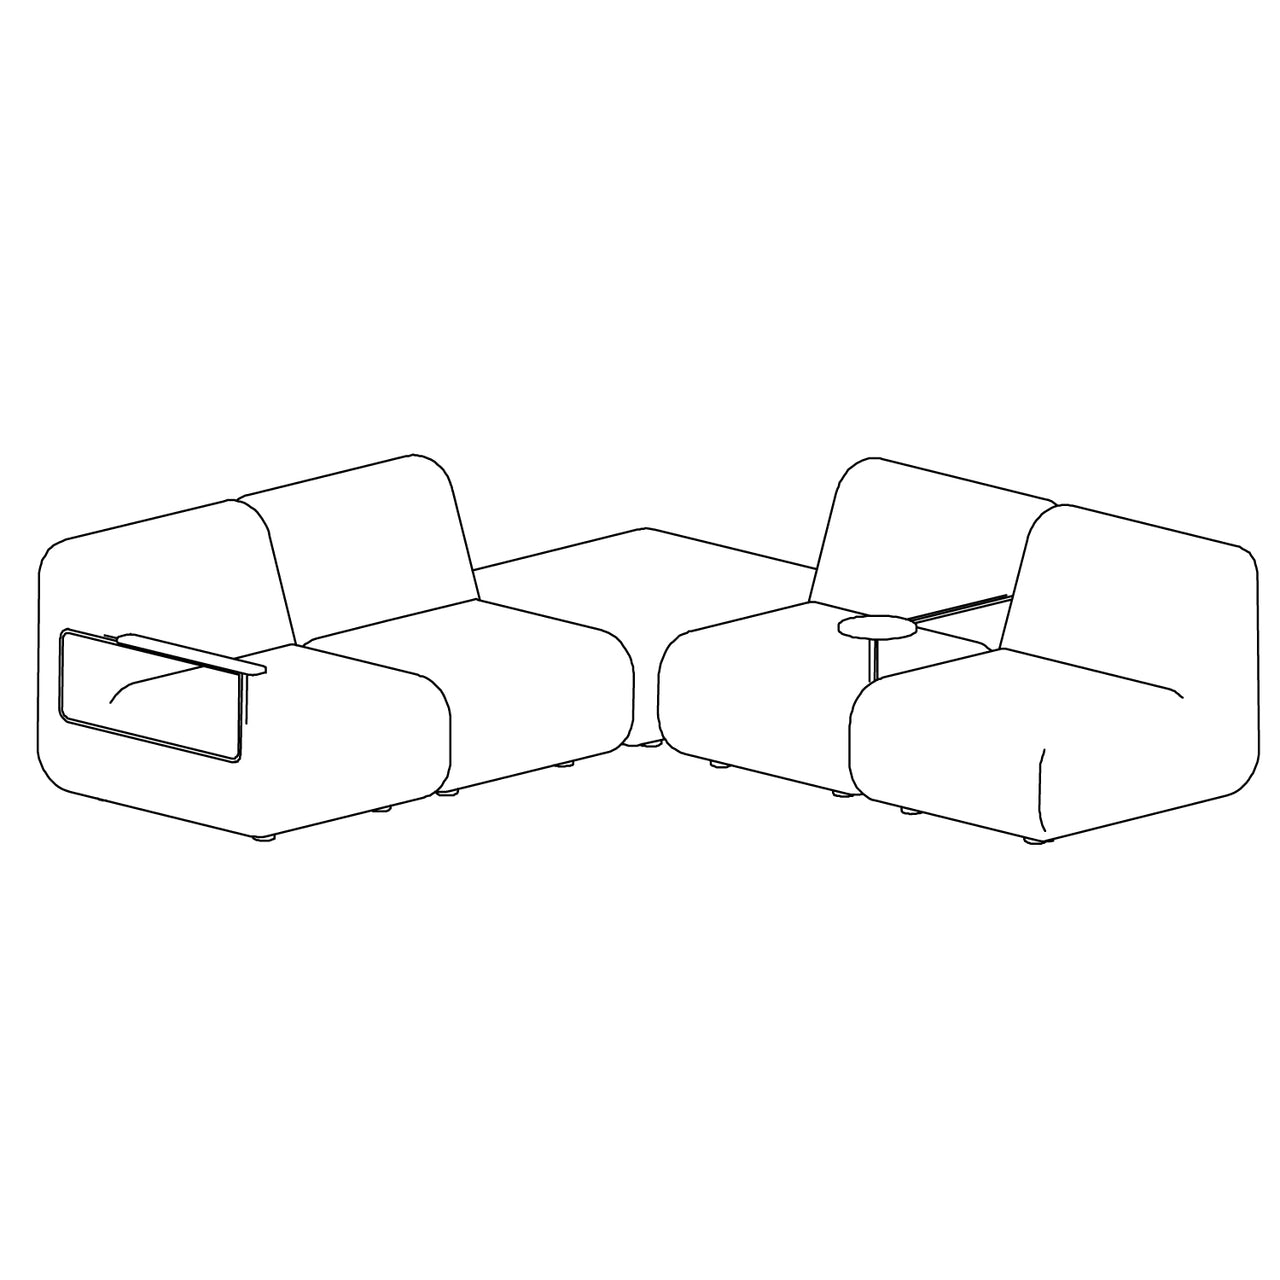 Gin Sofa - Configuration 4 Left